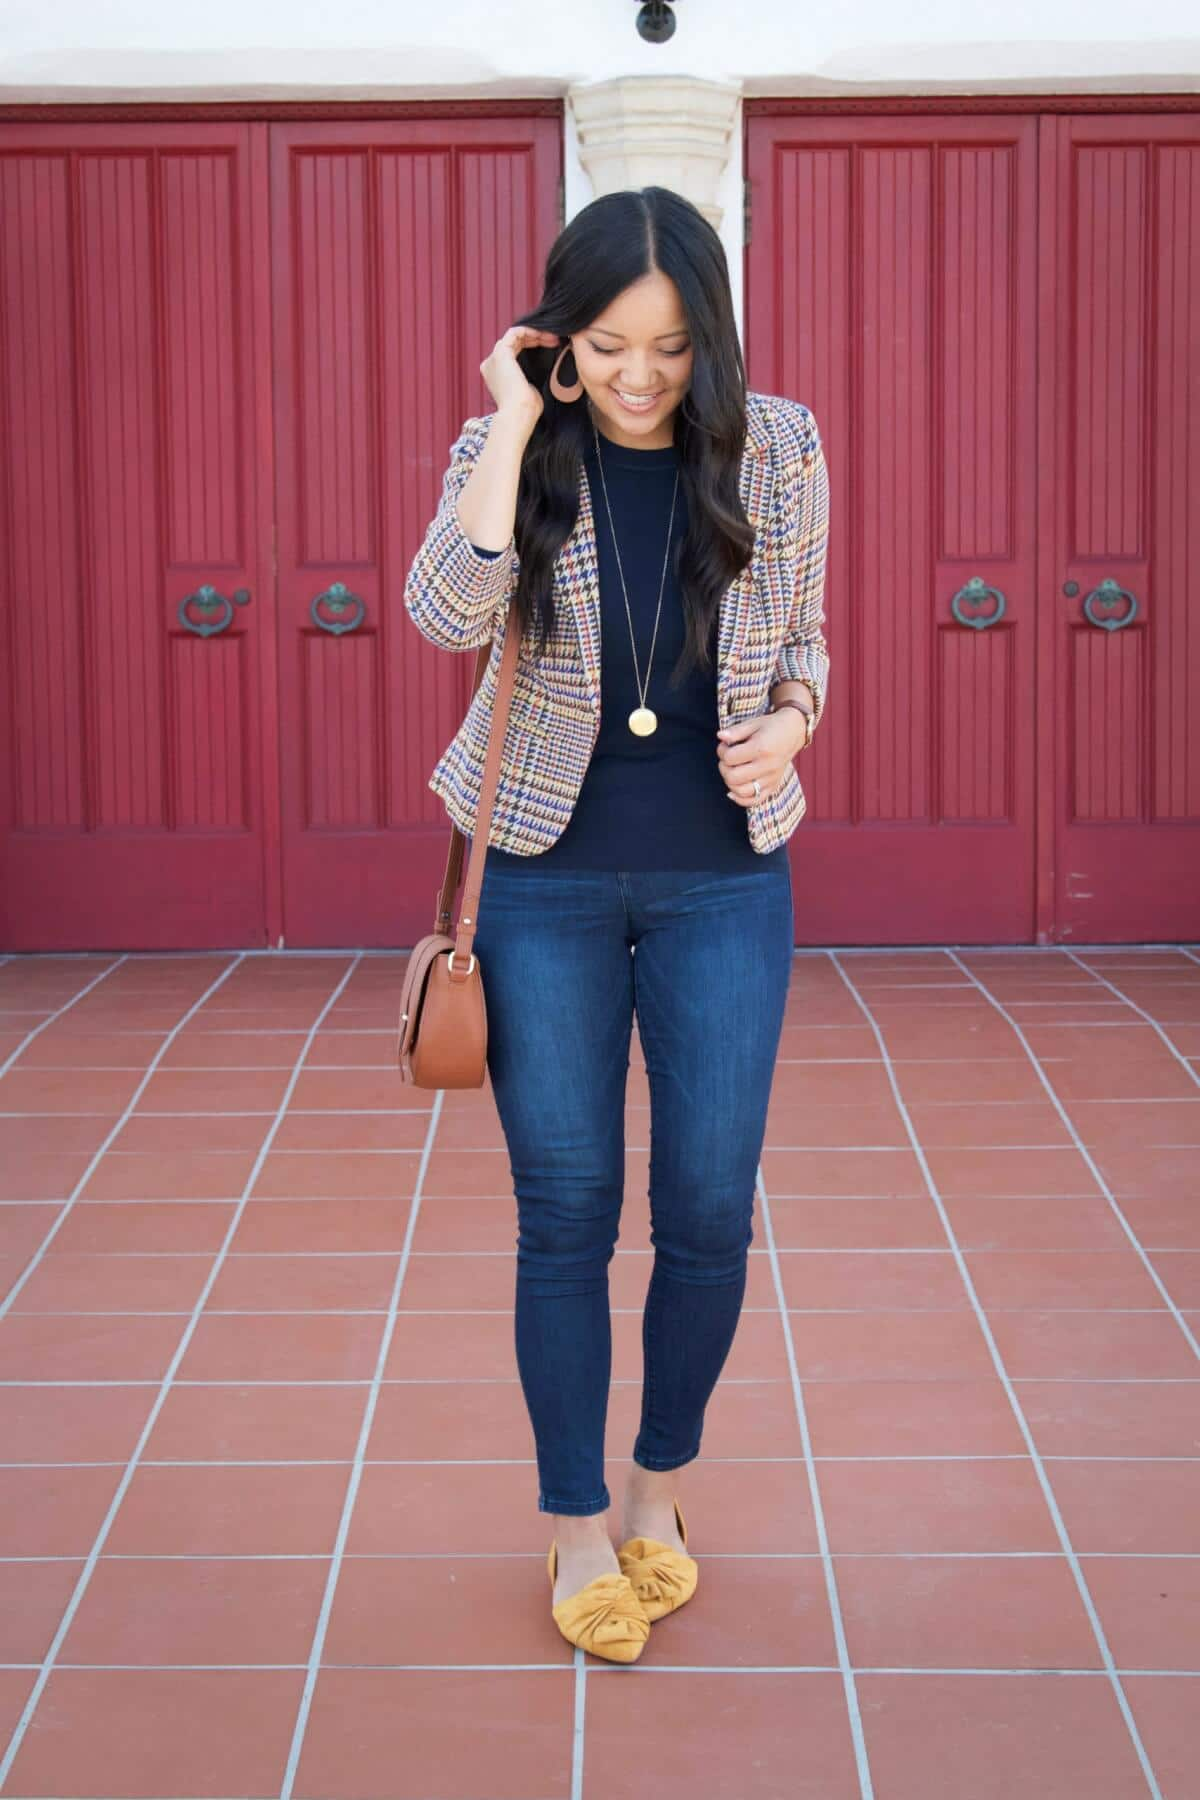 Elevated Casual Outfit: navy sweater solid-colored top + blue jeans + plaid blazer + tan earrings + gold pendant necklace + yellow flats + tan crossbody bag